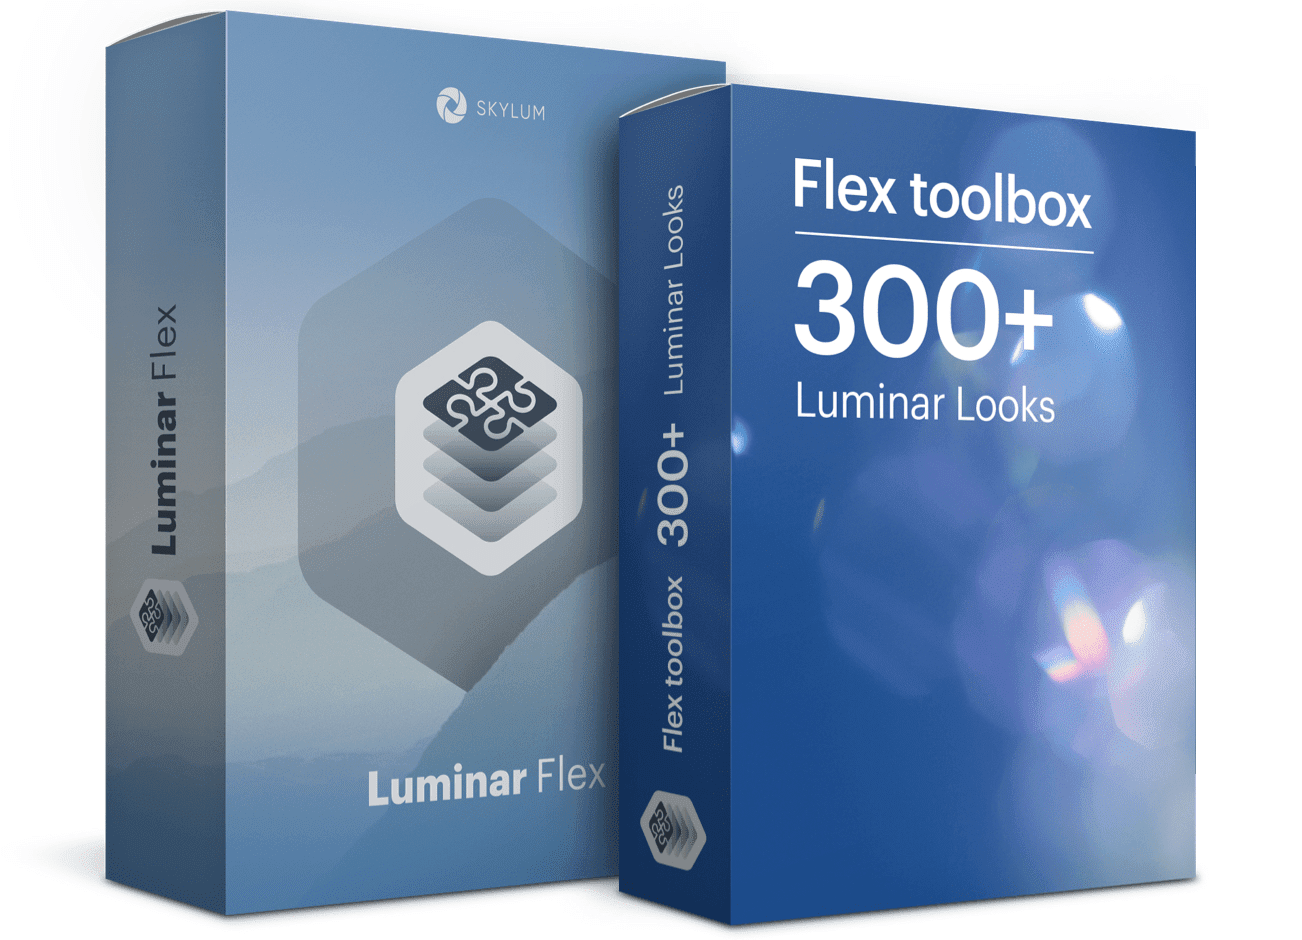 Luminar Flex + Toolbox Looks Pack Bundle (70% Off)</p><p>